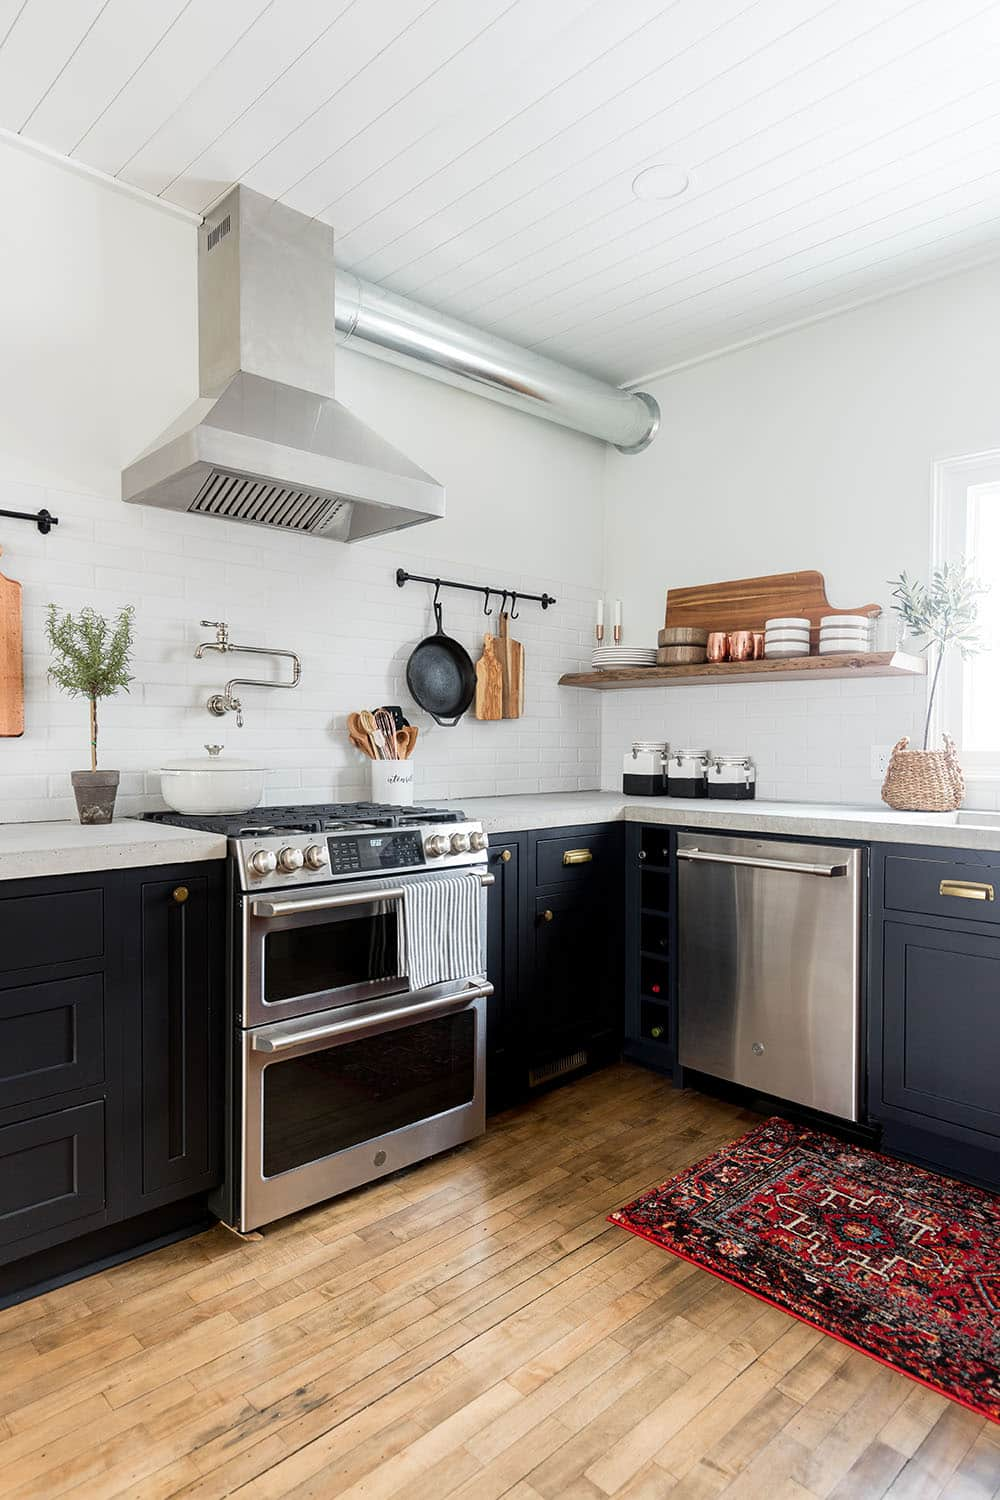 The corner of a kitchen with GE Cafe stainless steel appliances.